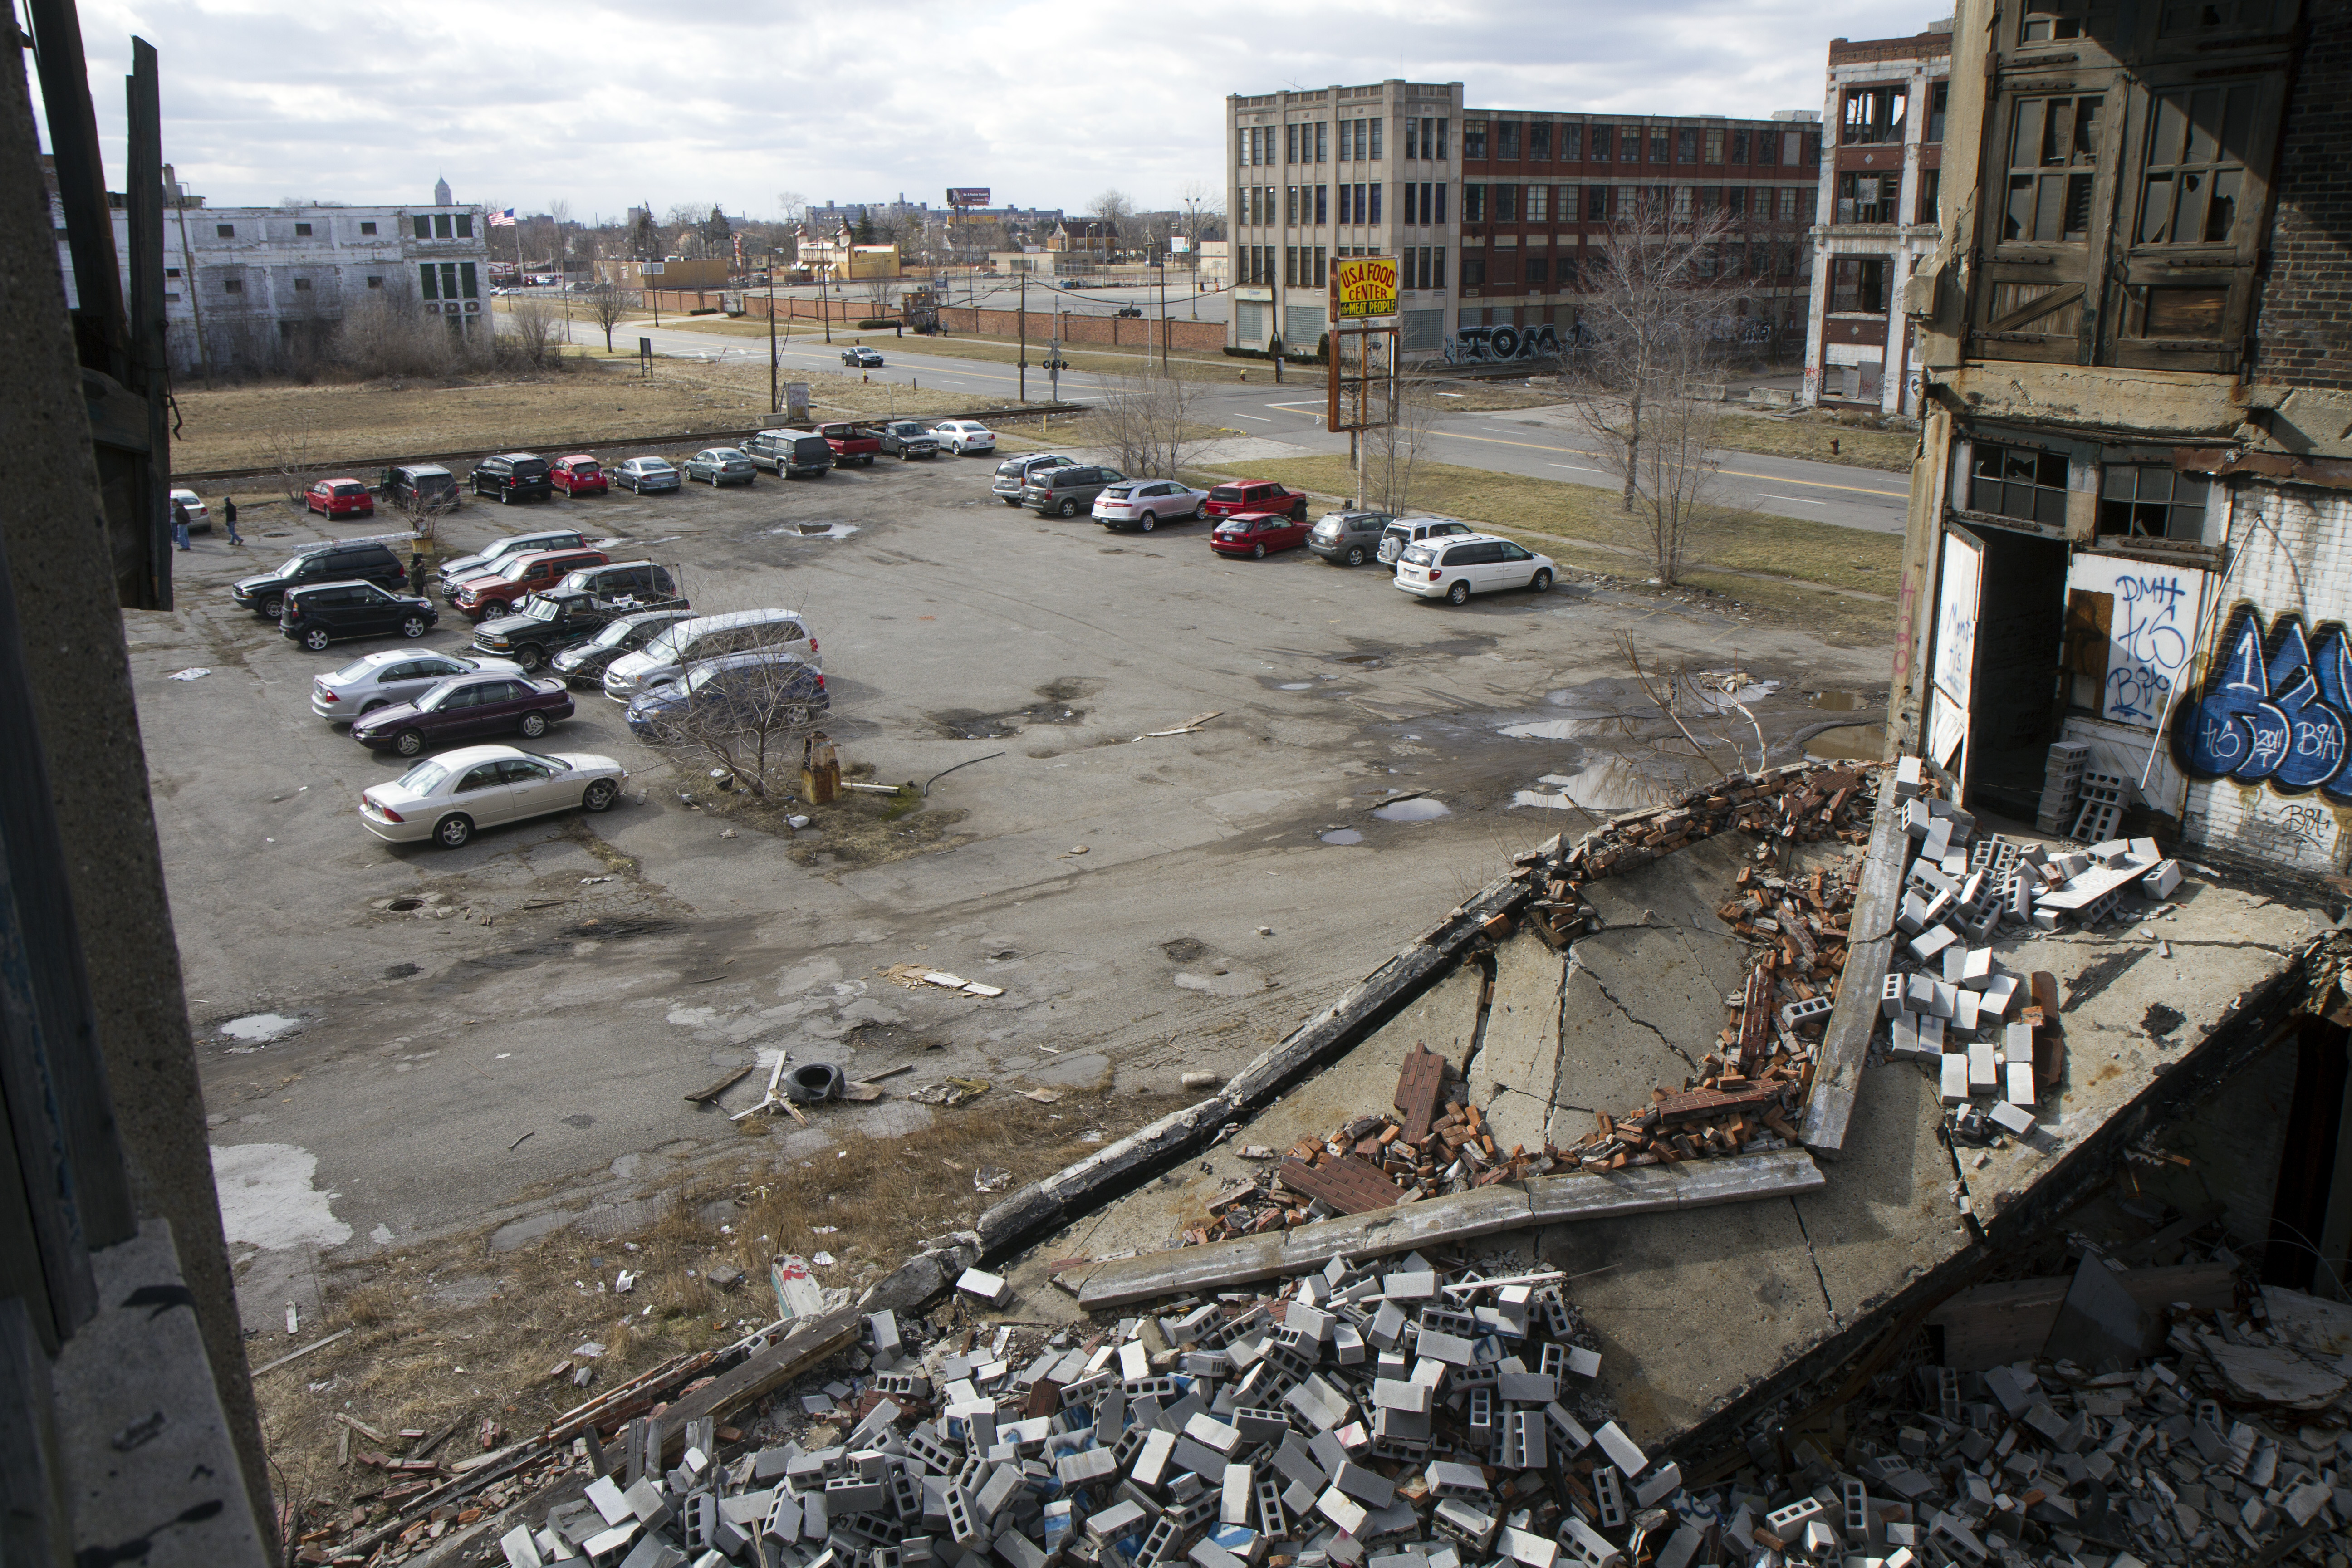 Part 1: Packard Plant becomes lawless wasteland; police hunt